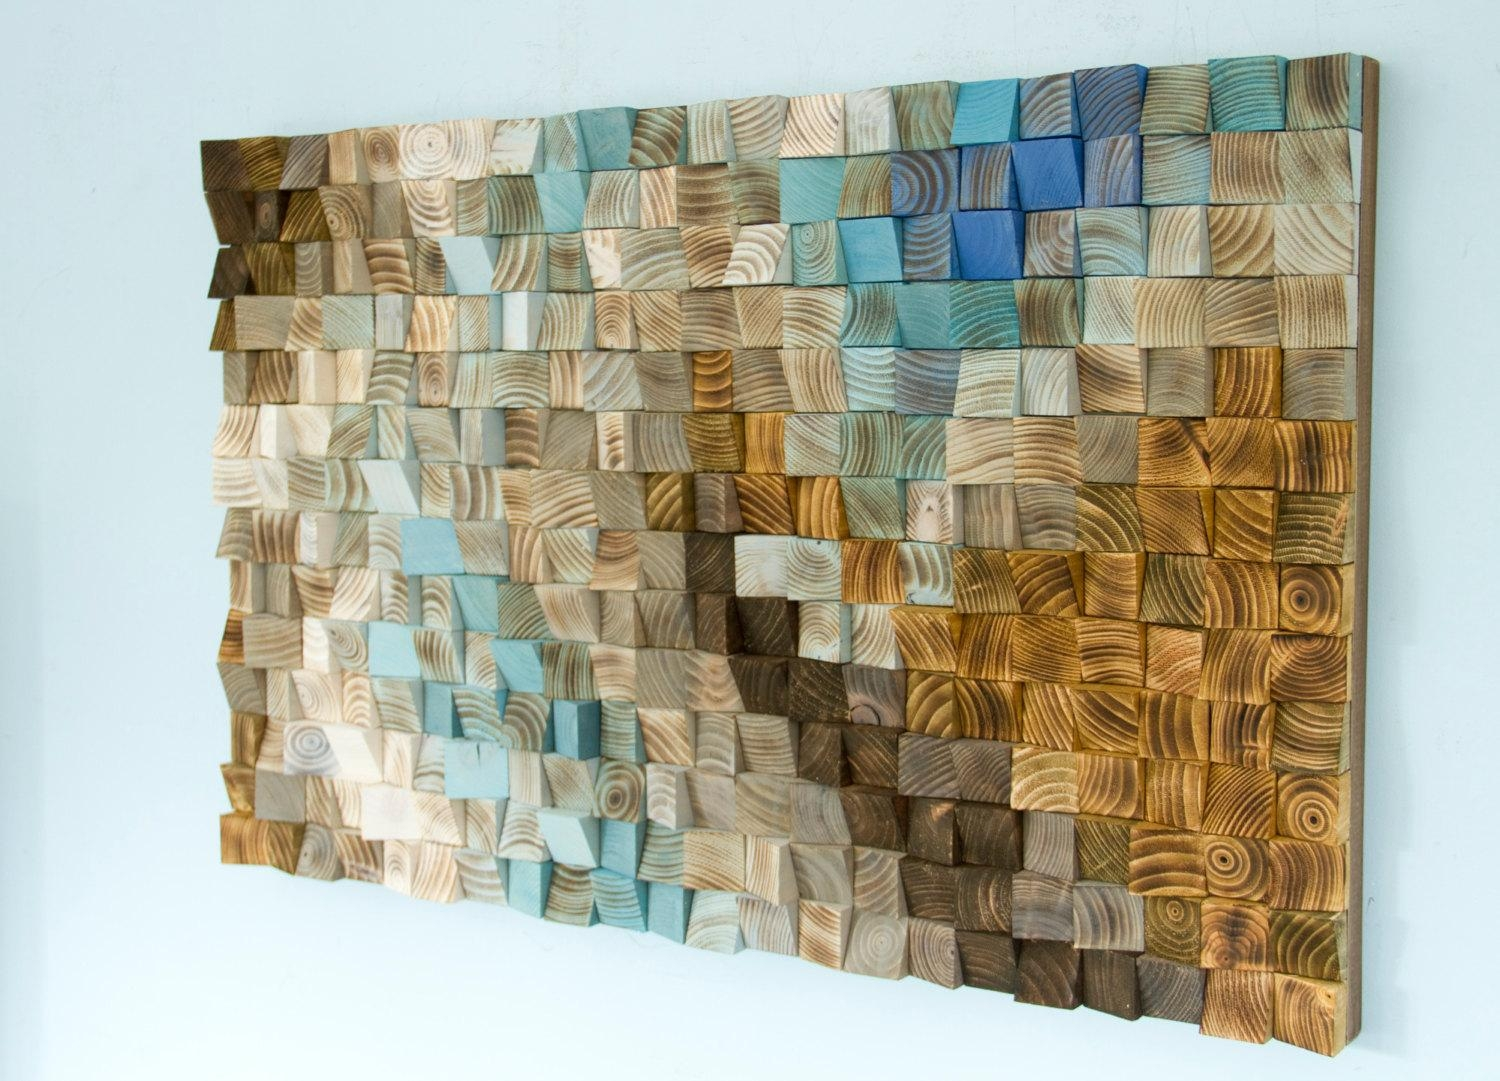 Wood Wall Art Mosaic, Office Wall Decor, Geometric Art, 24 X 36 Regarding Teal And Brown Wall Art (View 12 of 20)